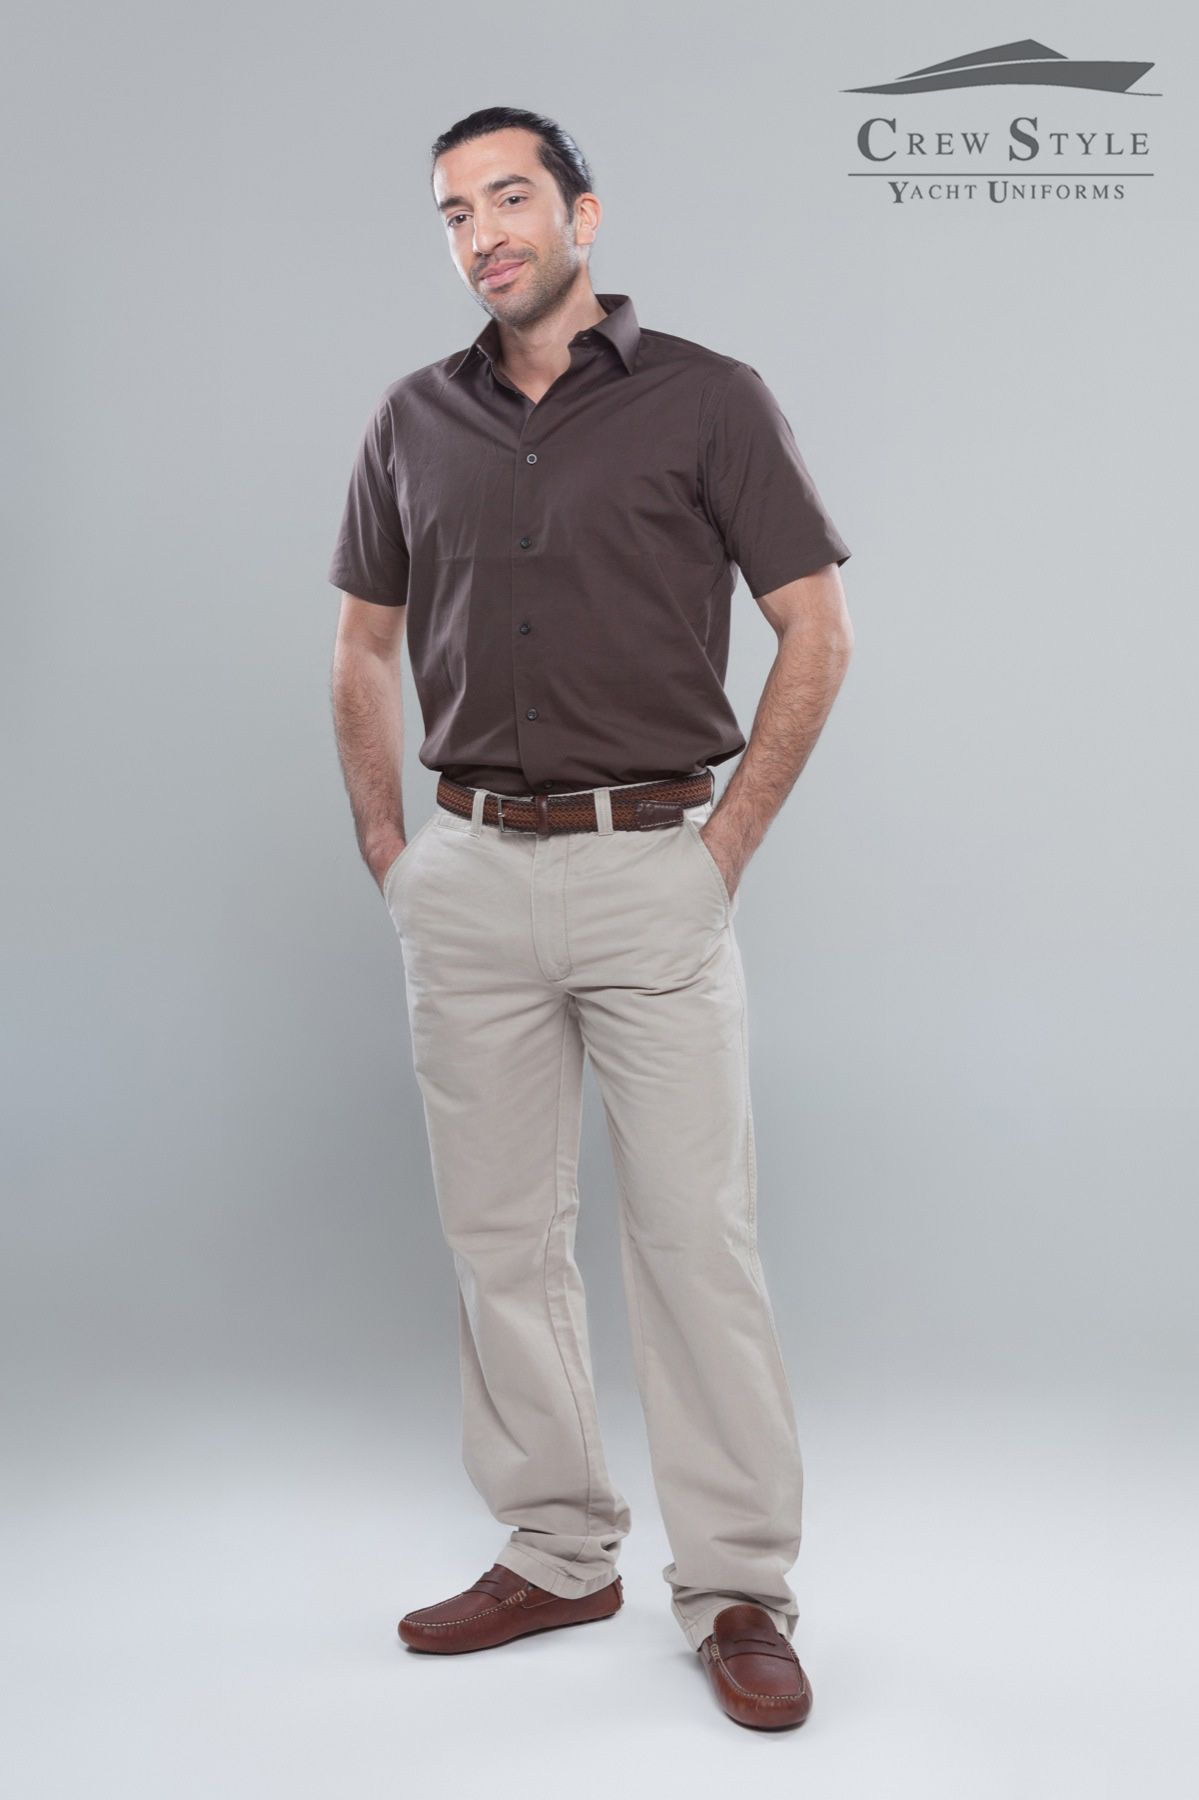 Beige and brown formal outfit formal wear yacht uniforms short